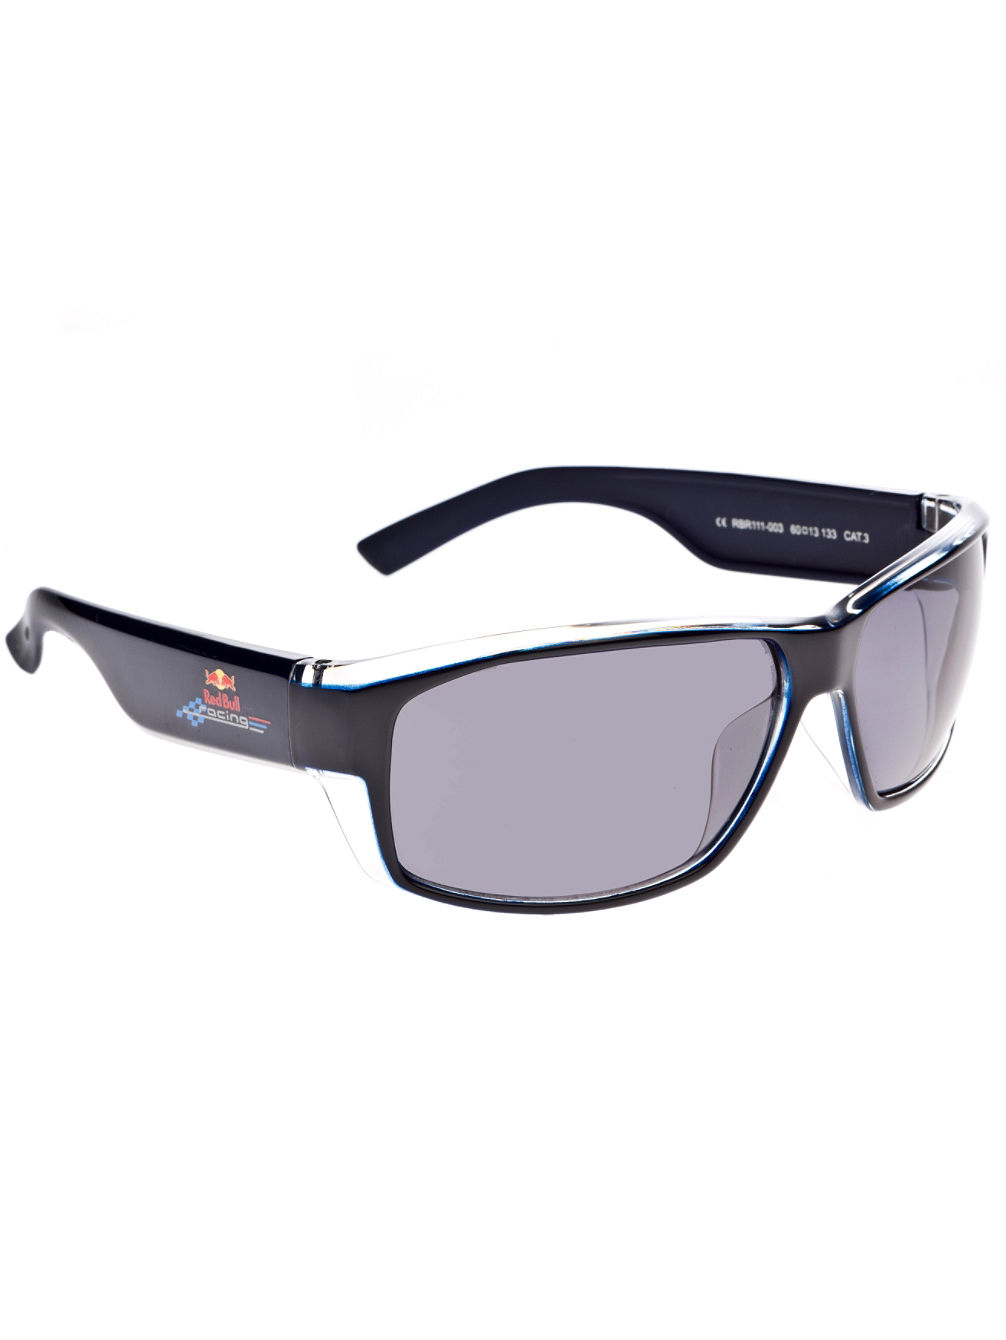 RBR111 dark blue/transparent